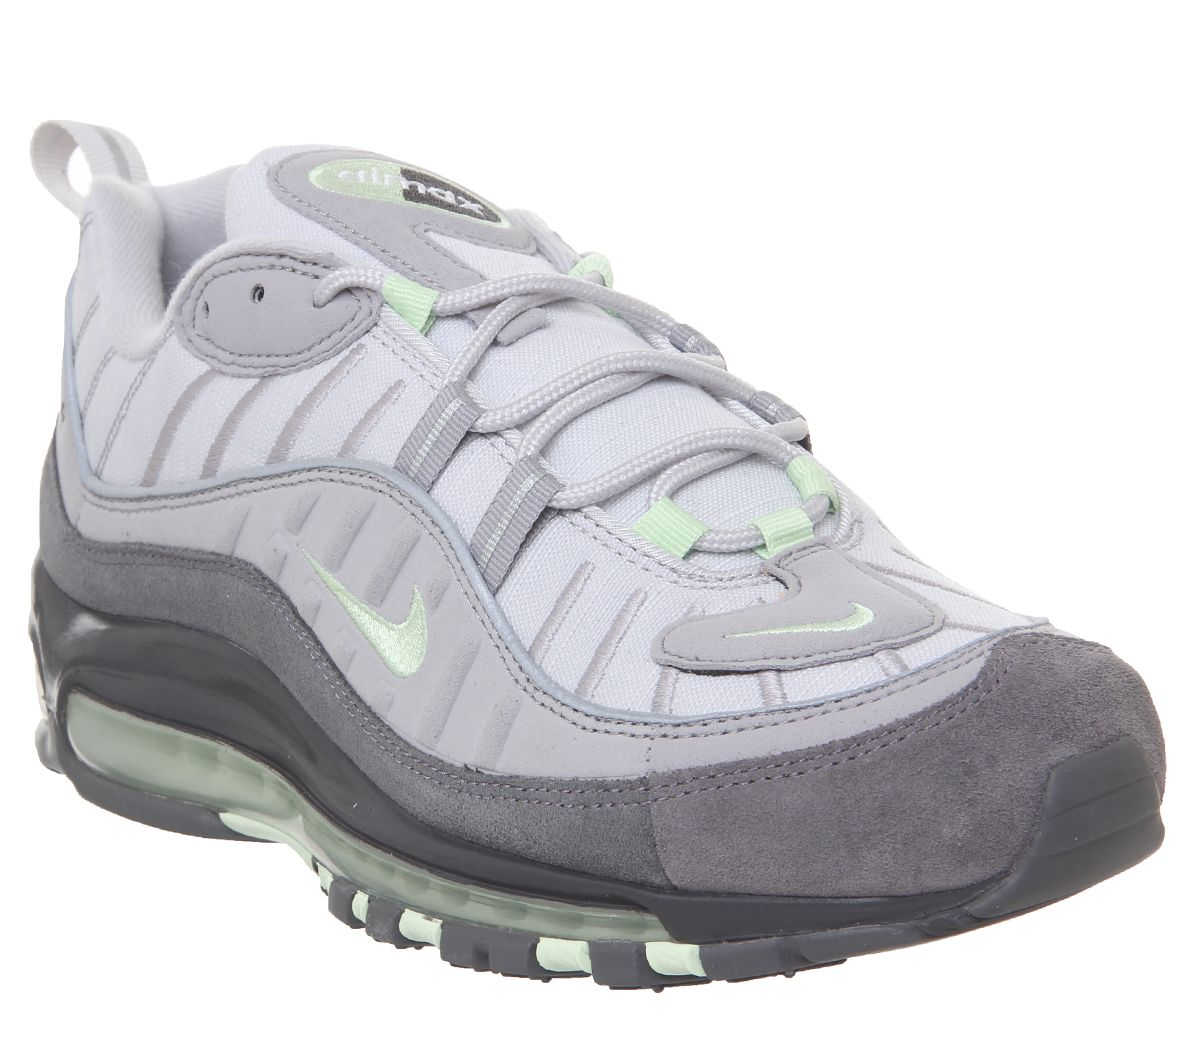 best service 58900 5d51c Air Max 98 Trainers